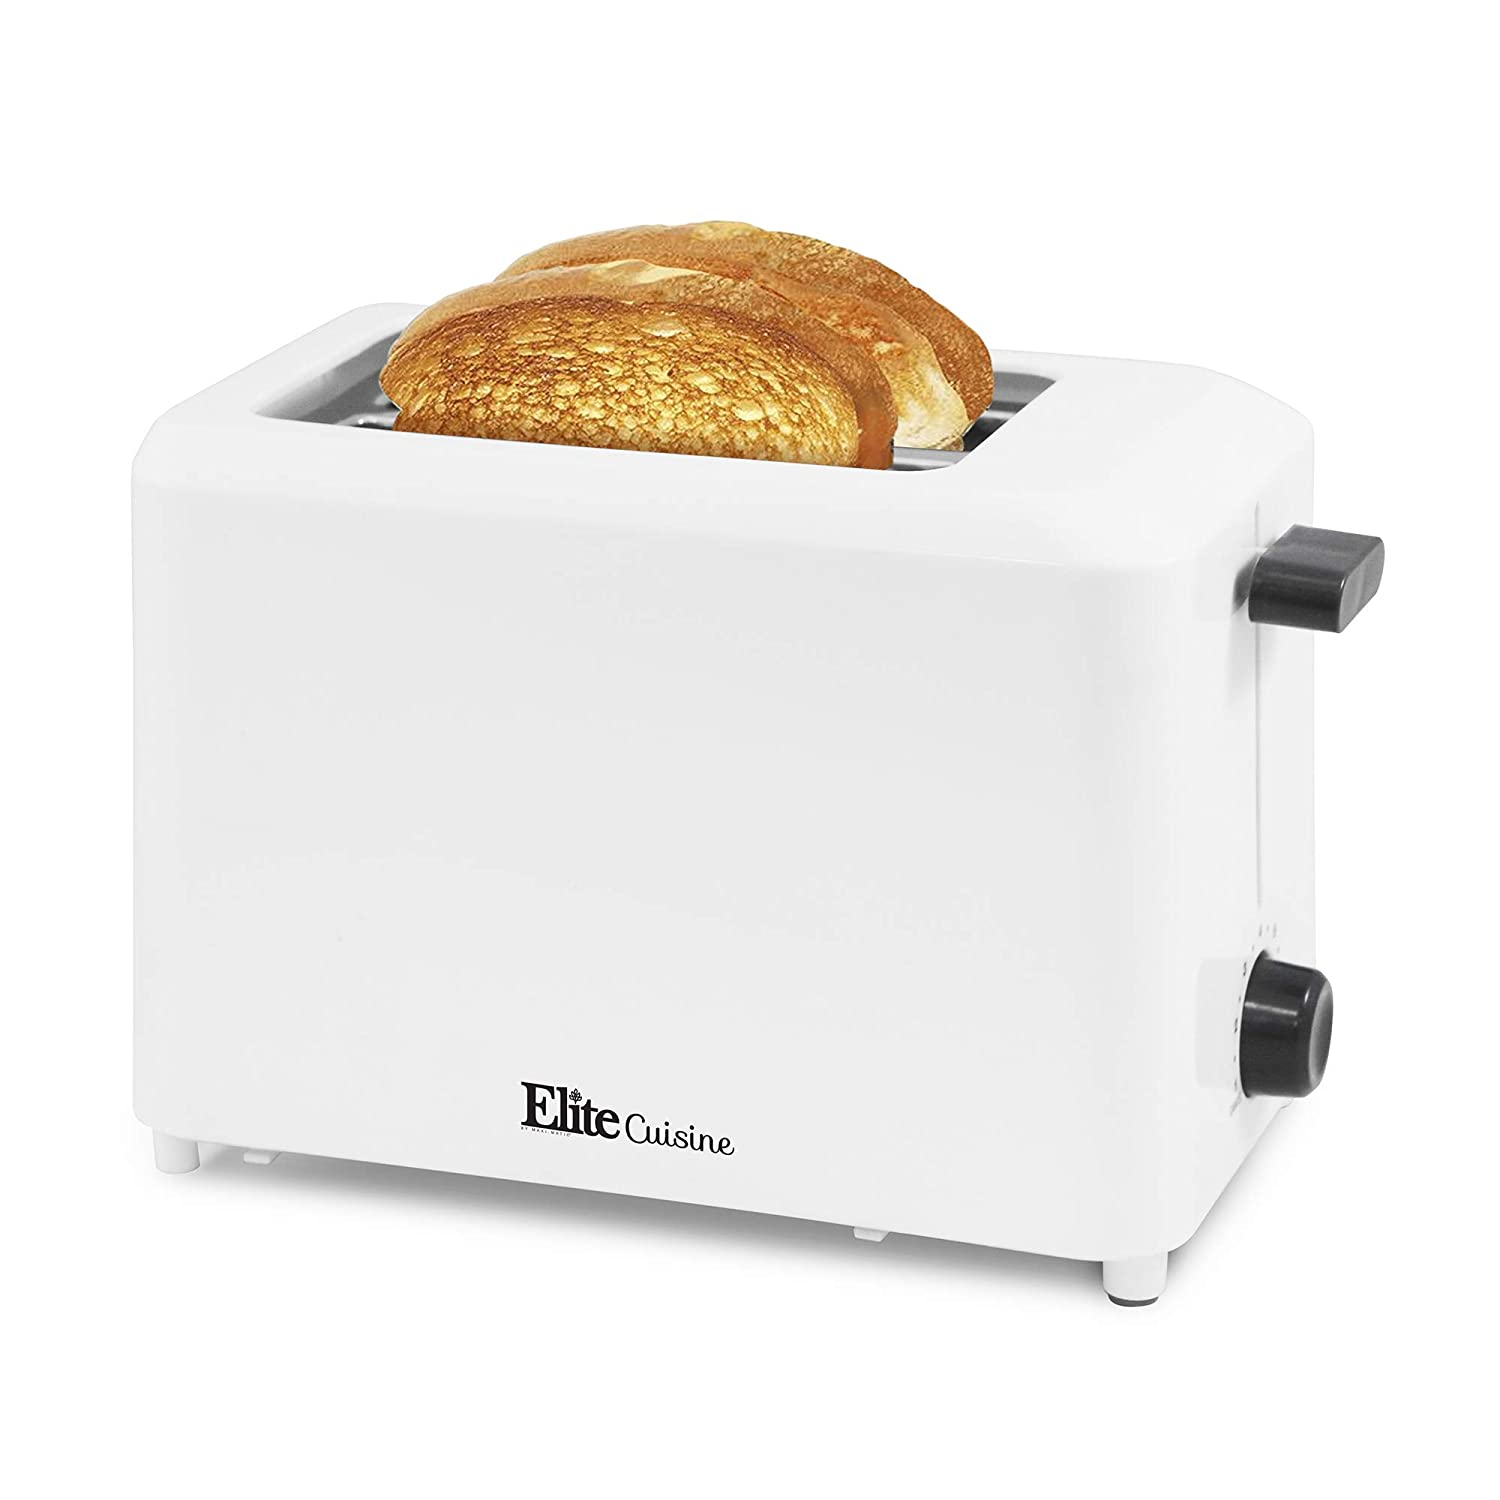 "Elite Cuisine ECT-1027 Cool Touch Toaster with Extra Wide 1.25"" Slots for Bagels and Specialty Breads, 2 Slices, Black"